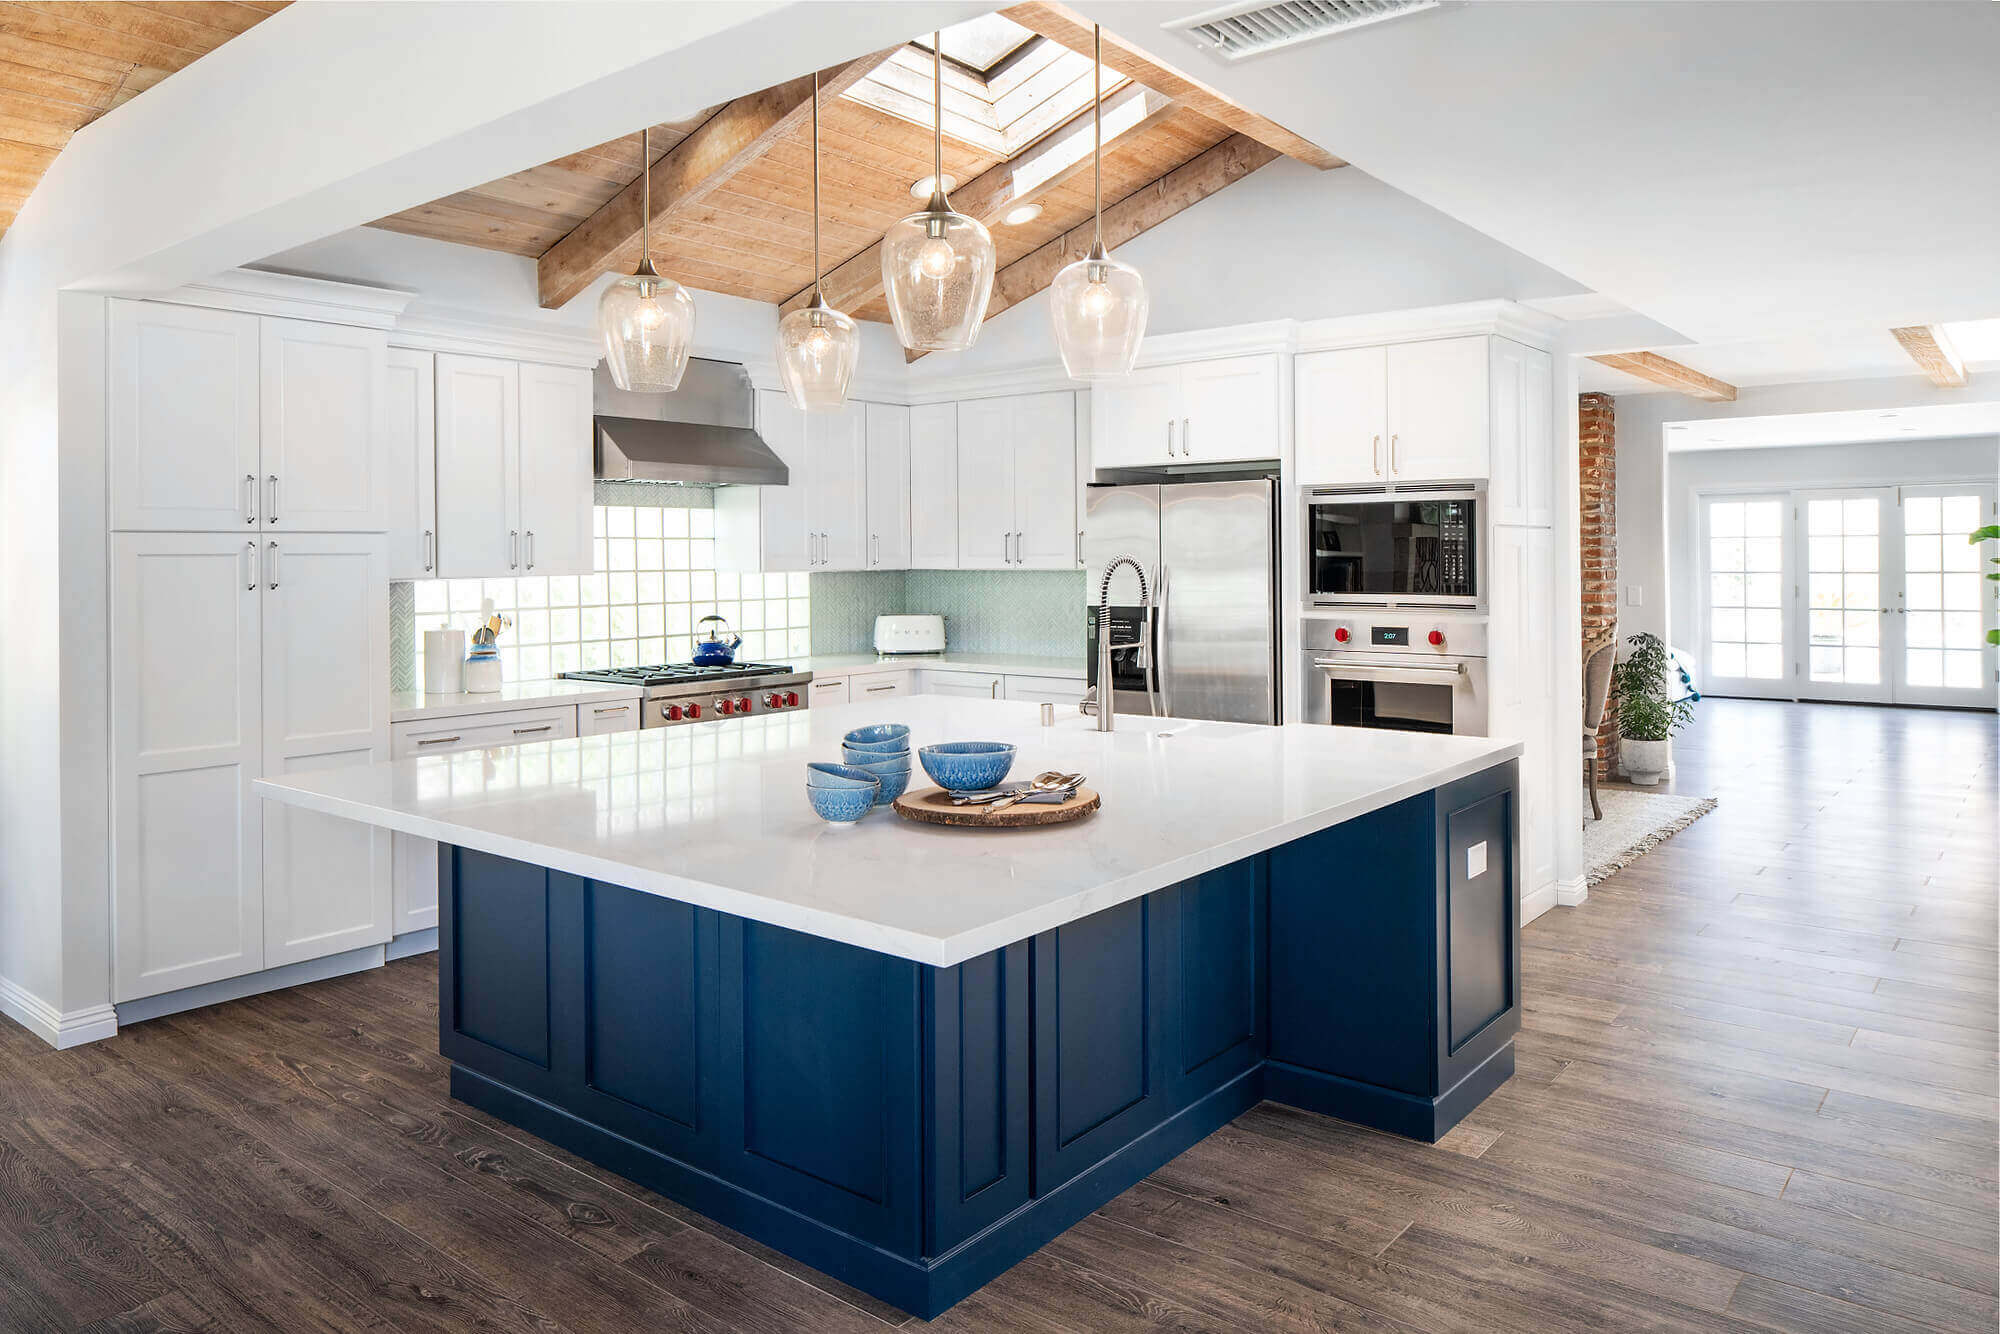 remodeled kitchen with classic blue island and quartz countertops.